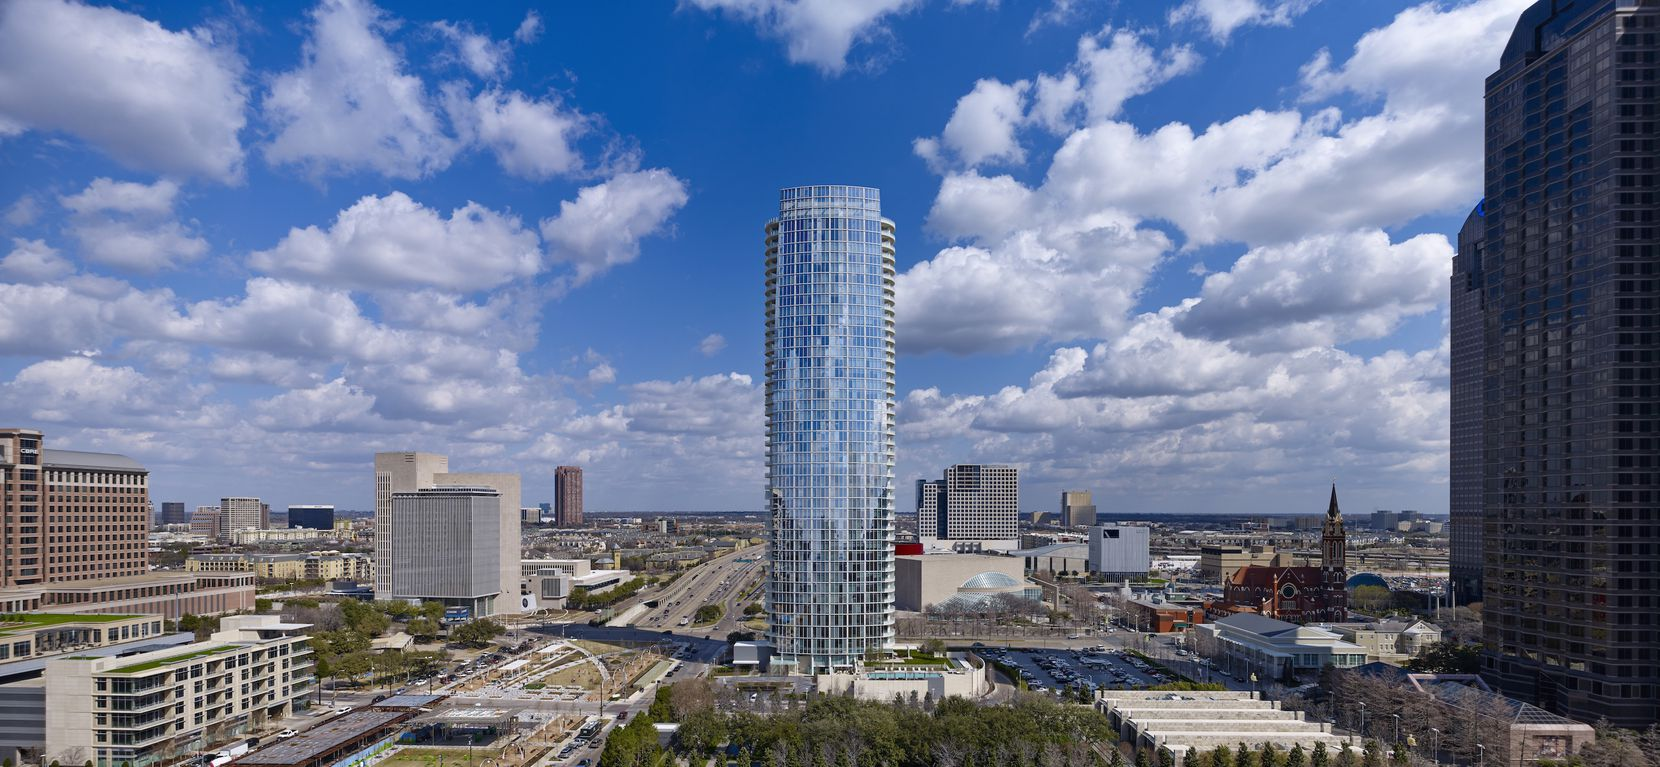 The $200 million Museum Tower opened in 2010 with 42 floors.